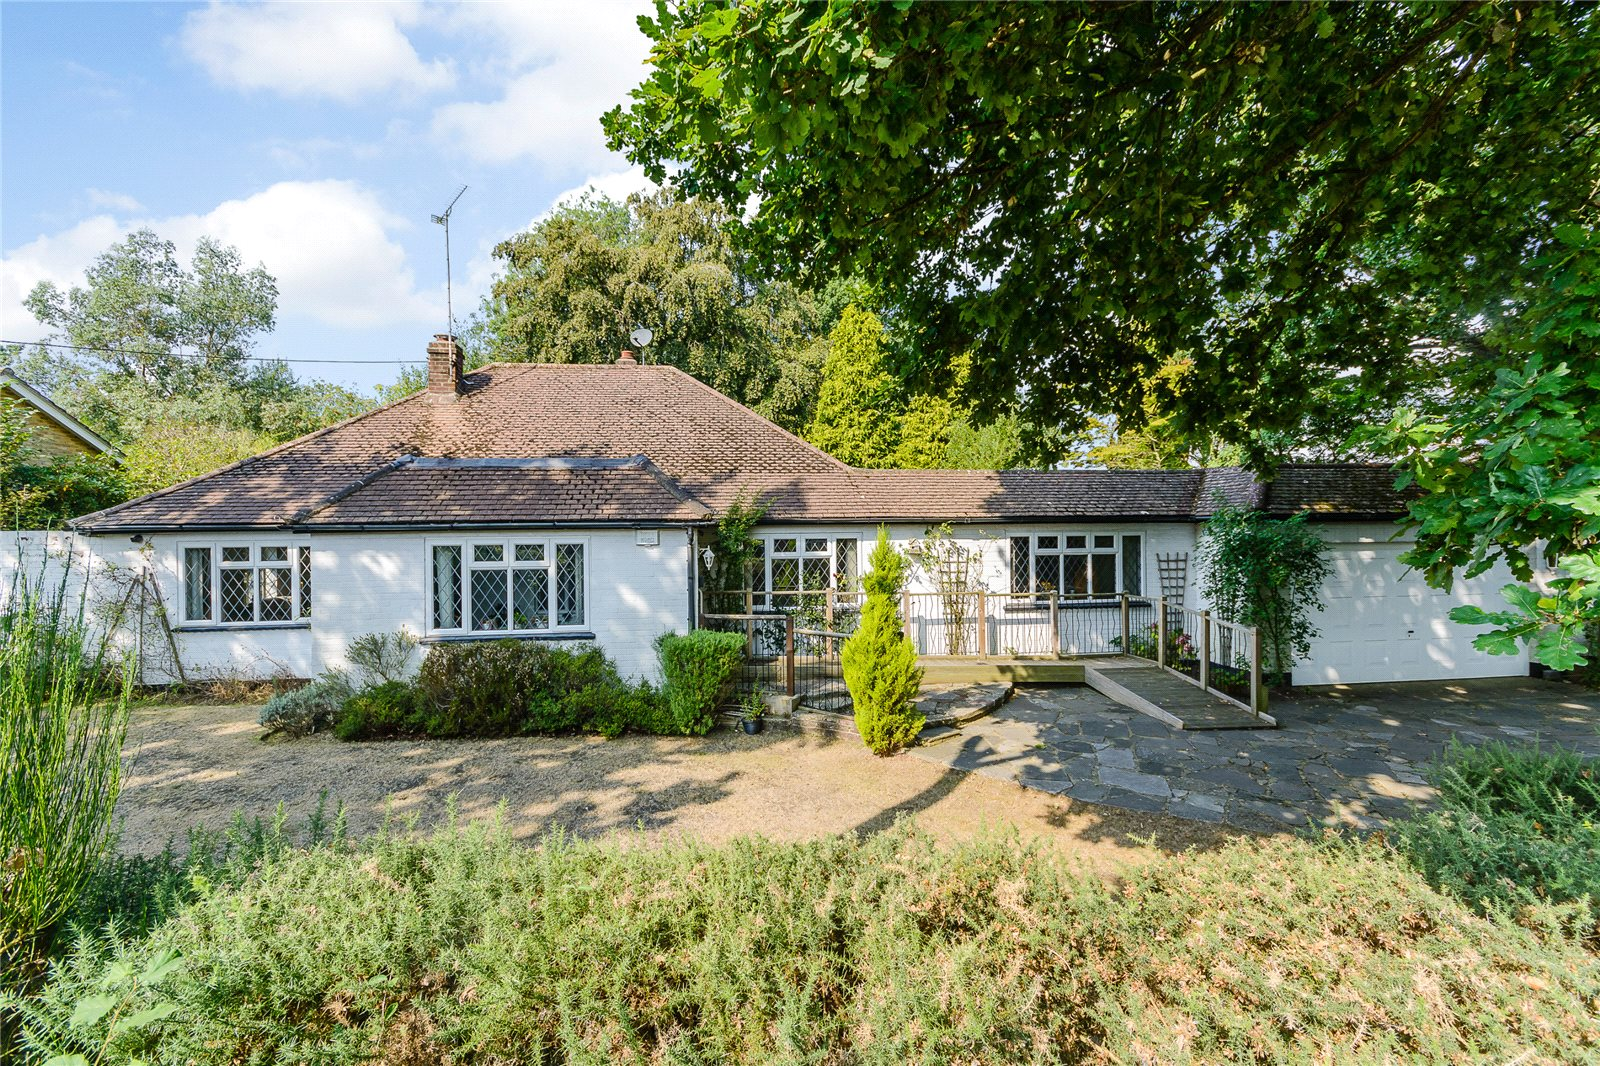 Single Family Home for Sale at Locks Ride, Ascot, Berkshire, SL5 Ascot, England